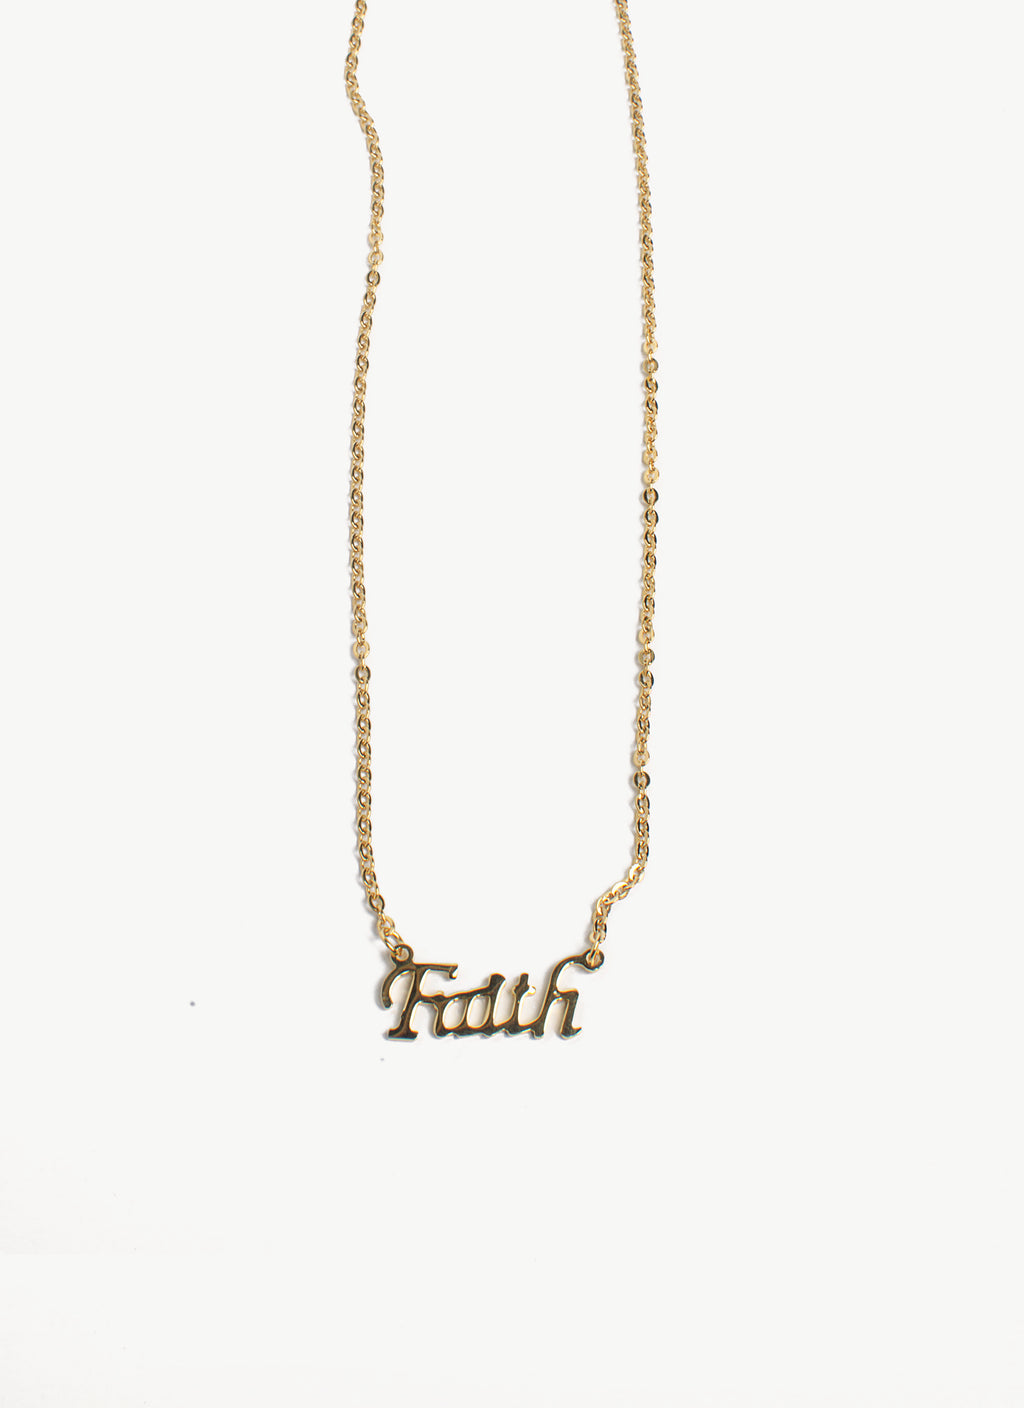 LAH-FAITH necklace TARNISH FREE - ebrook lael